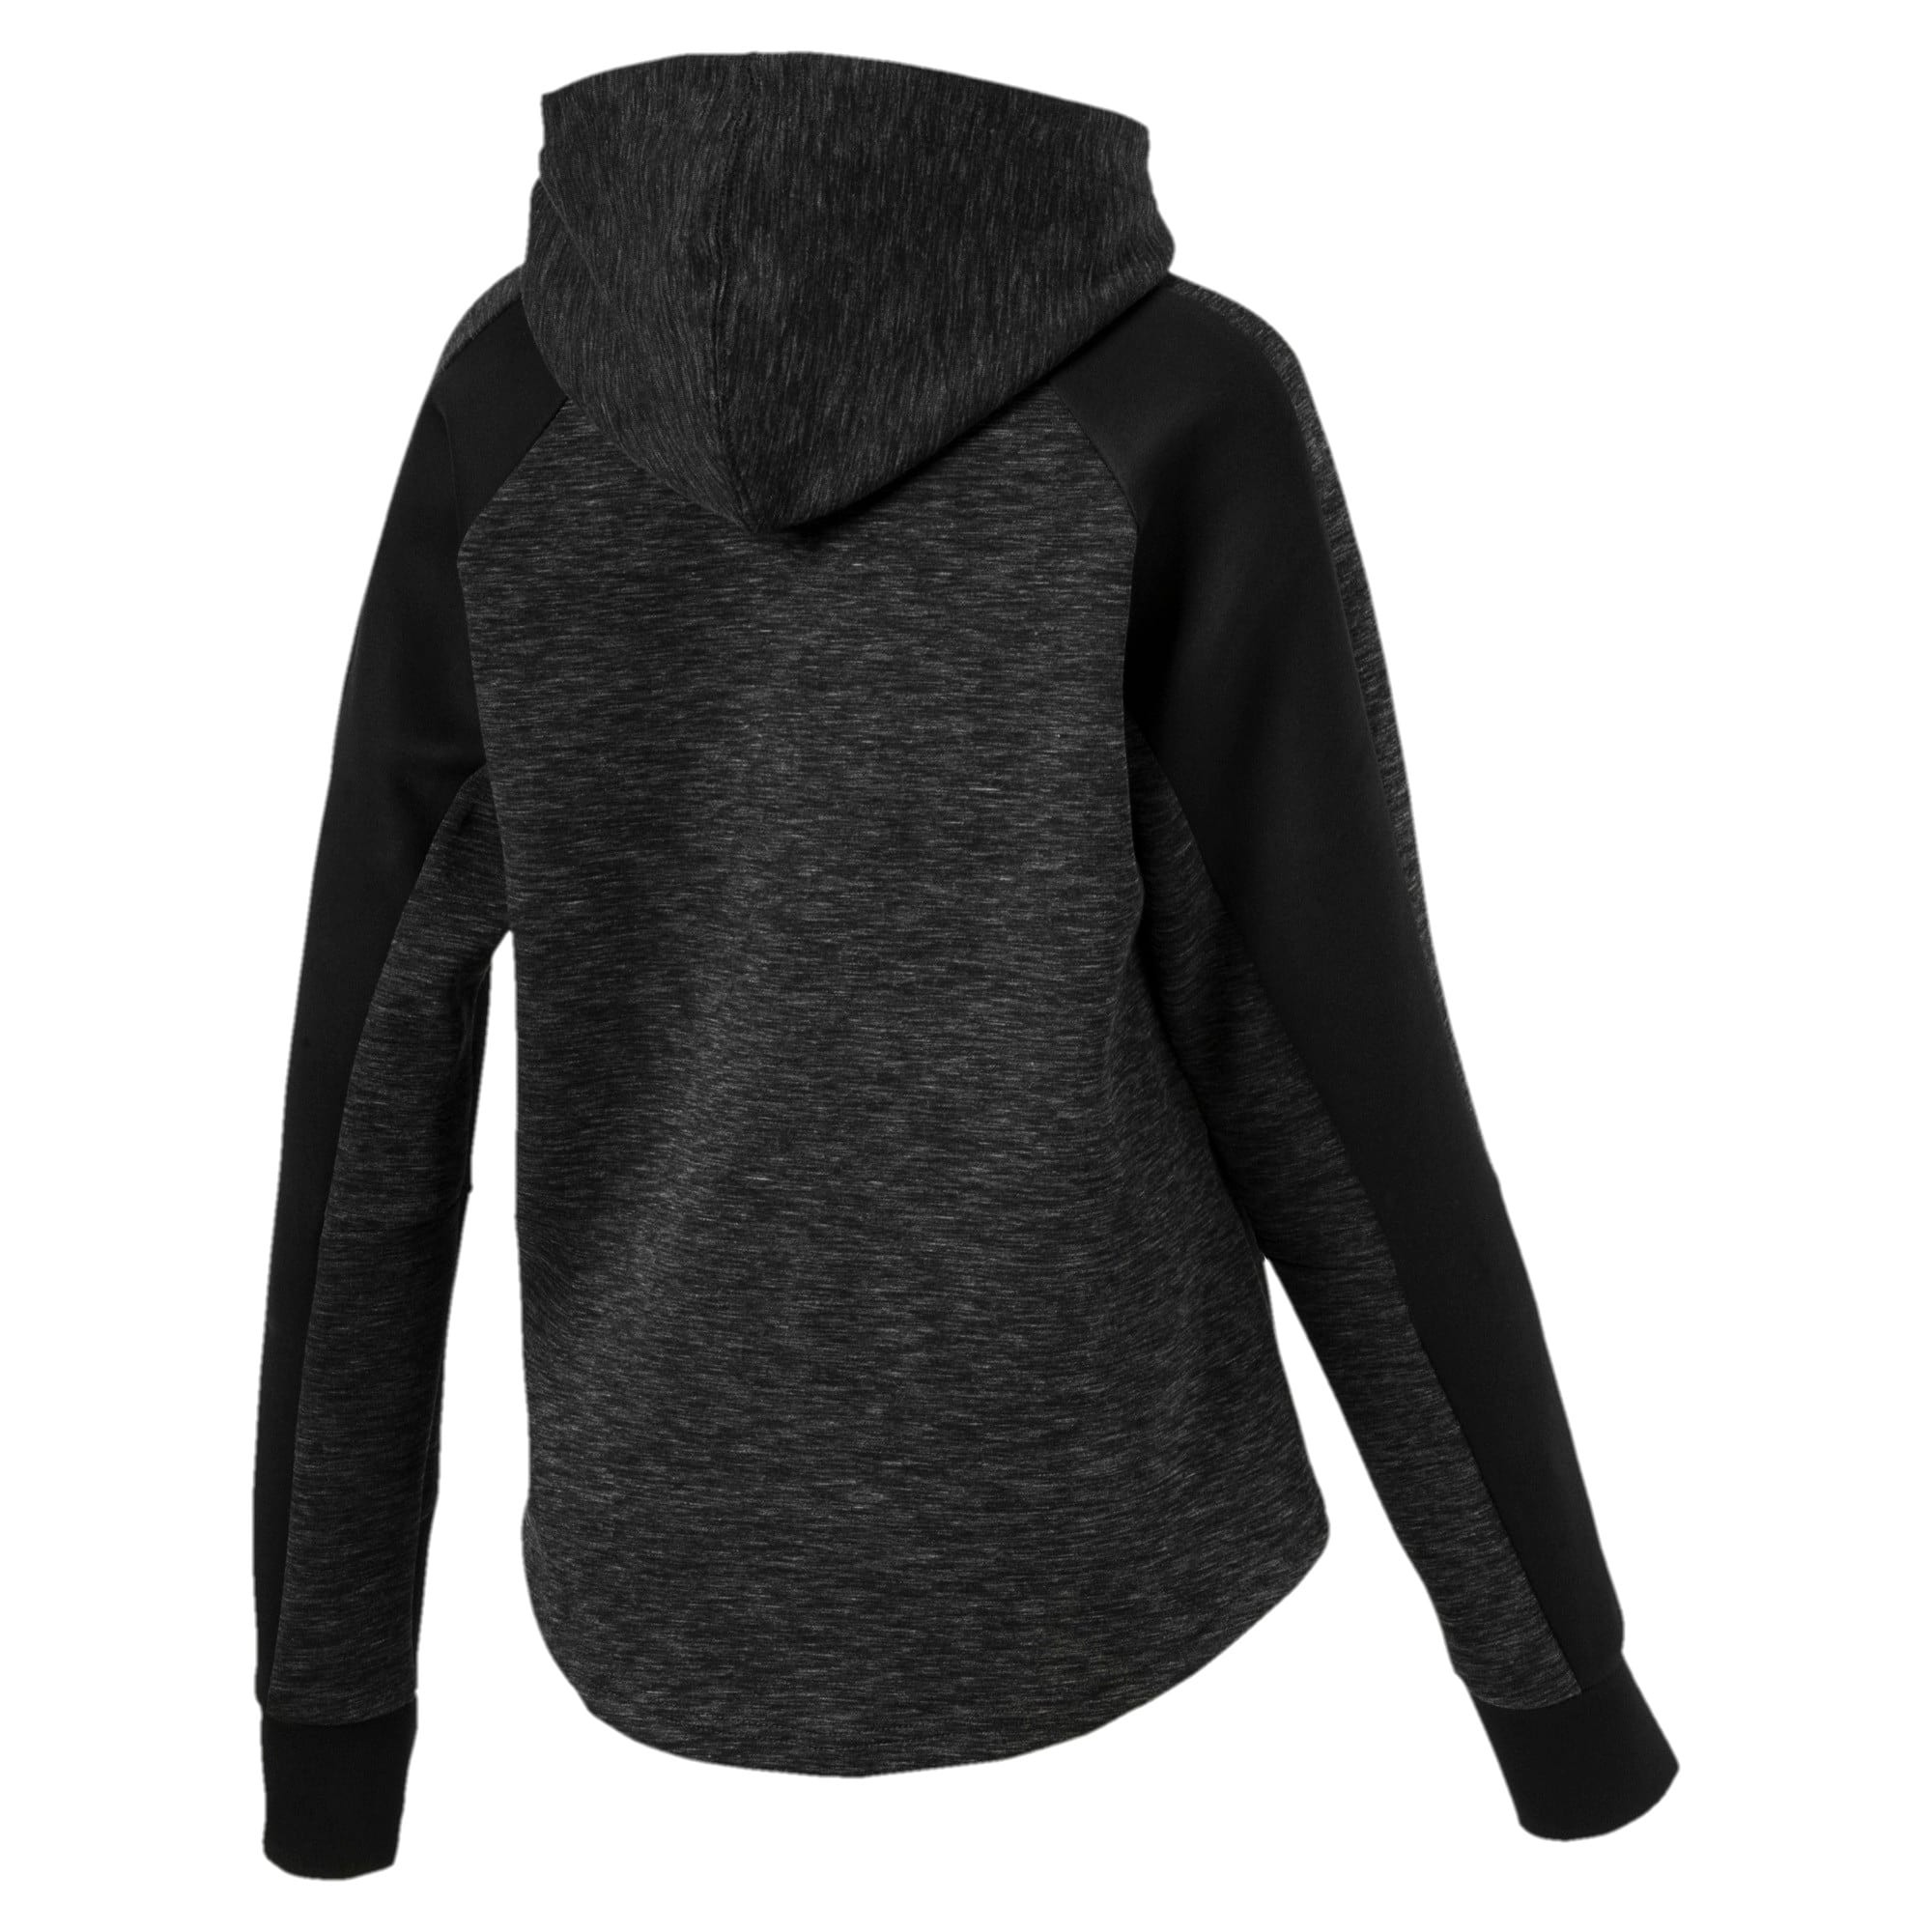 Thumbnail 4 of Evostripe Full Zip Women's Hoodie, Cotton Black-heather, medium